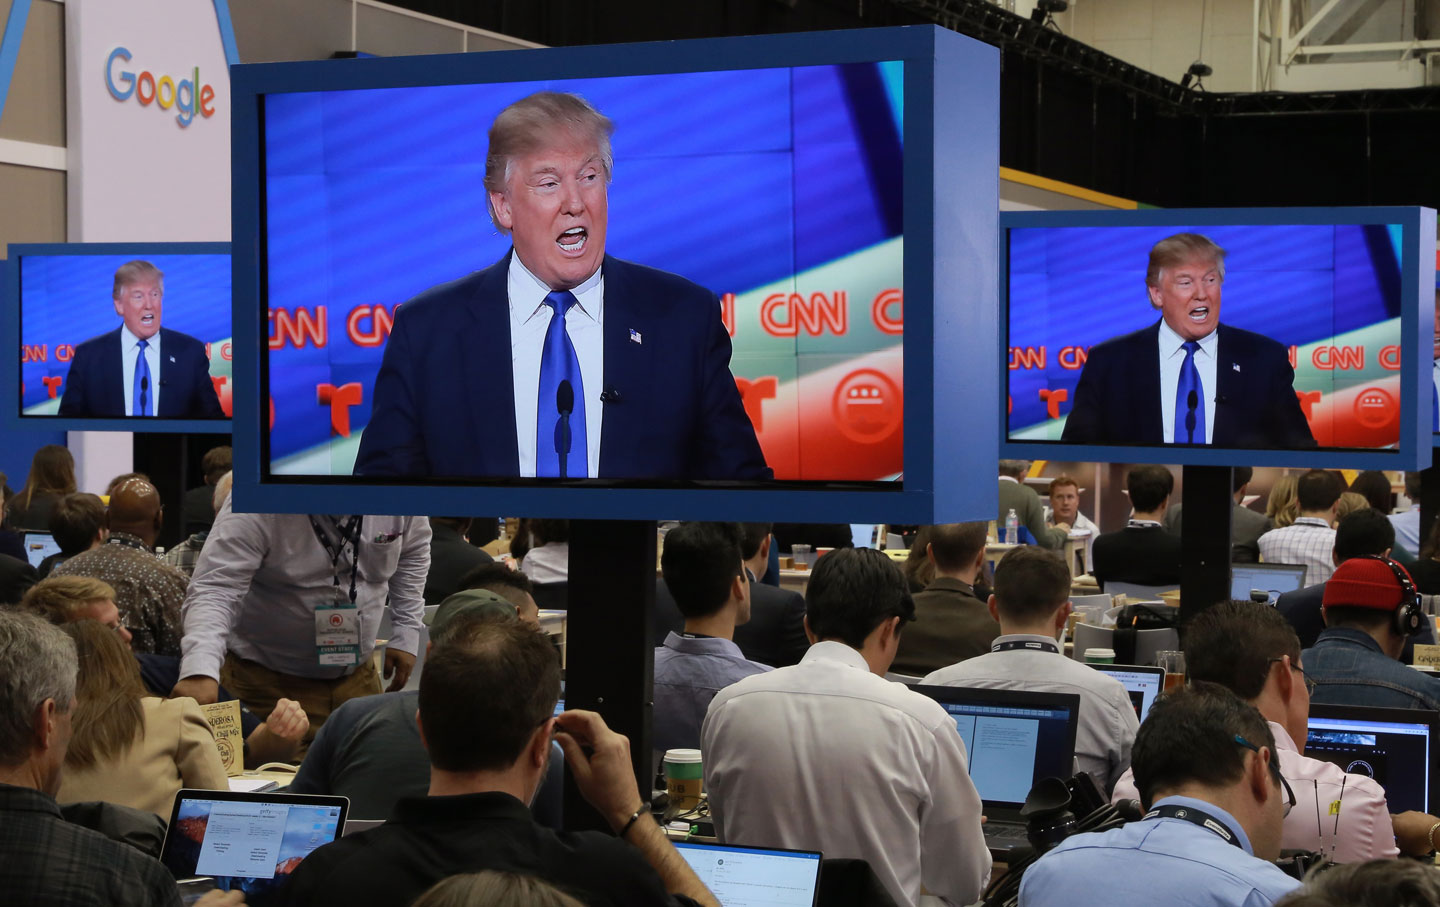 Journalists watch GOP debate